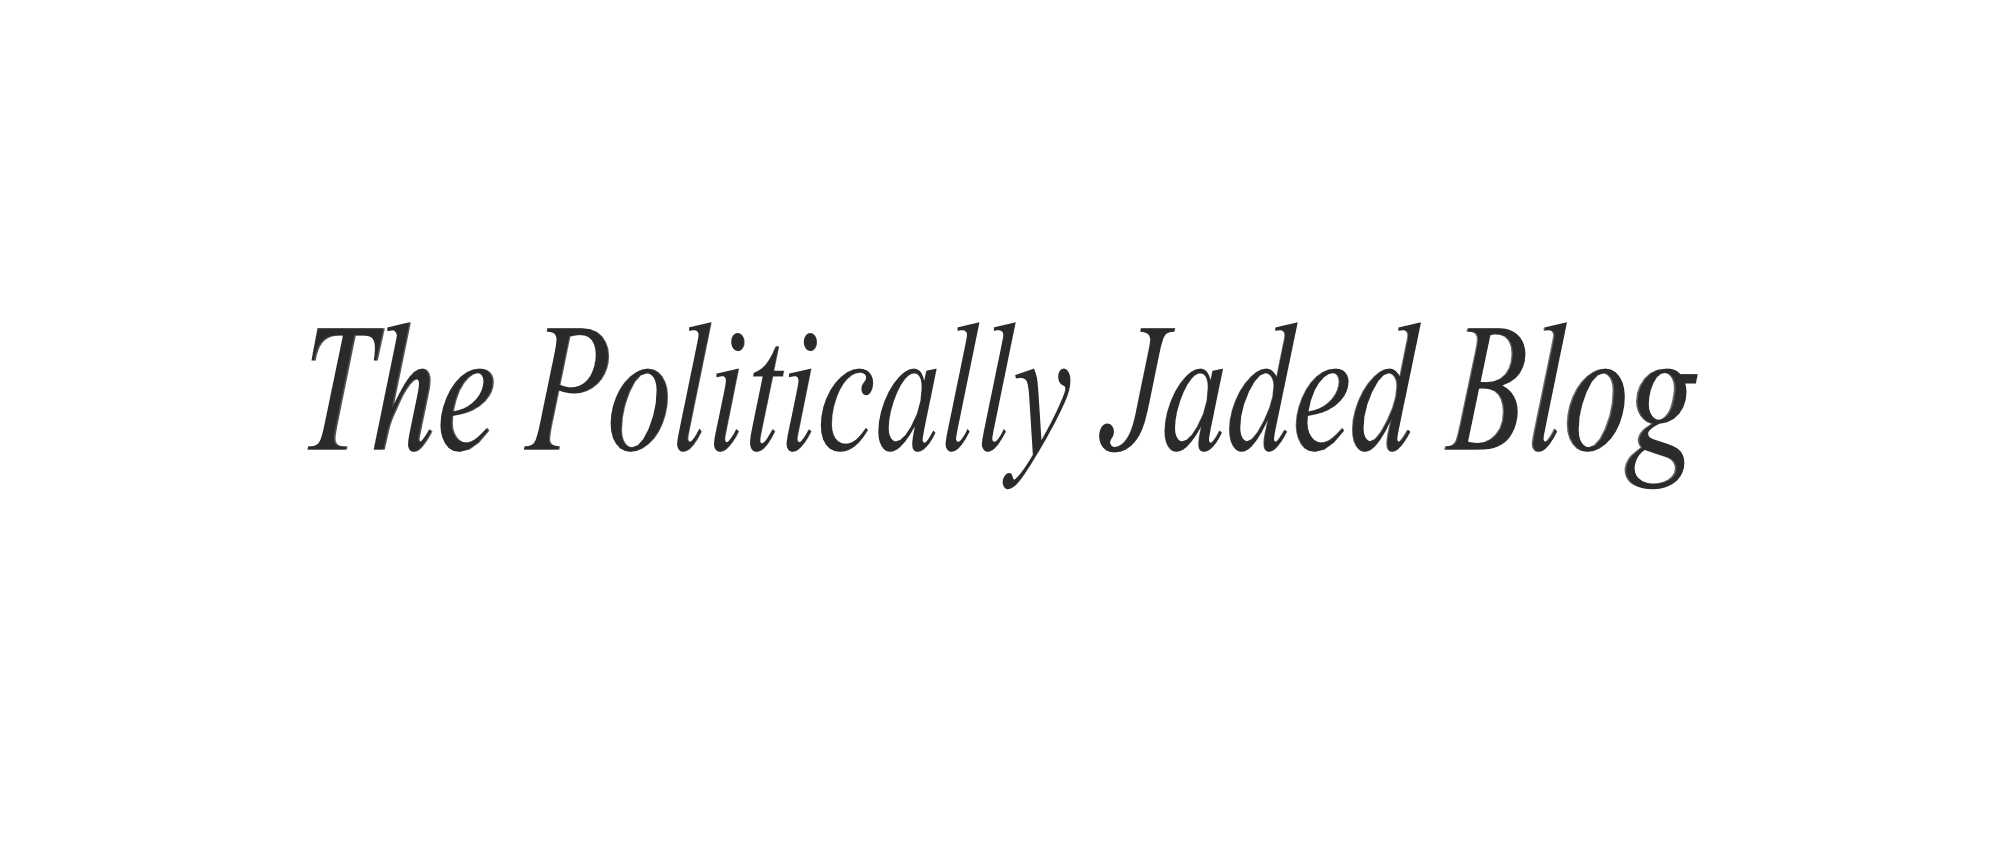 political, jaded, blog, funny, social commentary